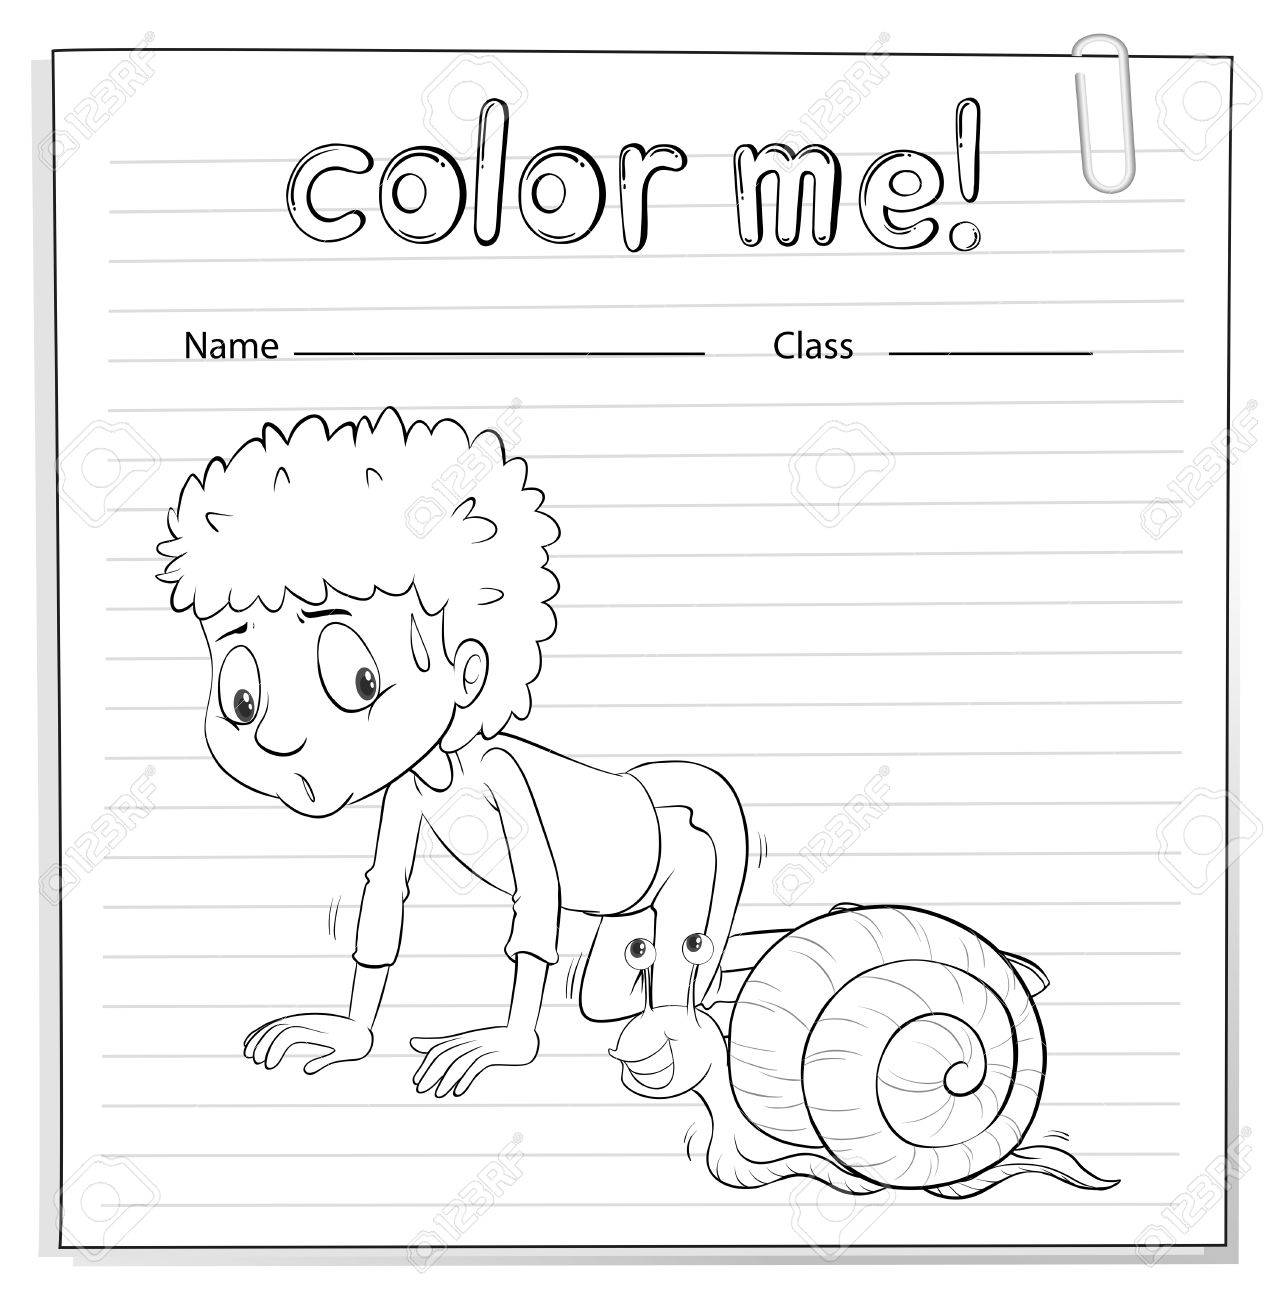 Worksheets Vectors Worksheet a color me worksheet with kid and snail crawling on white background stock